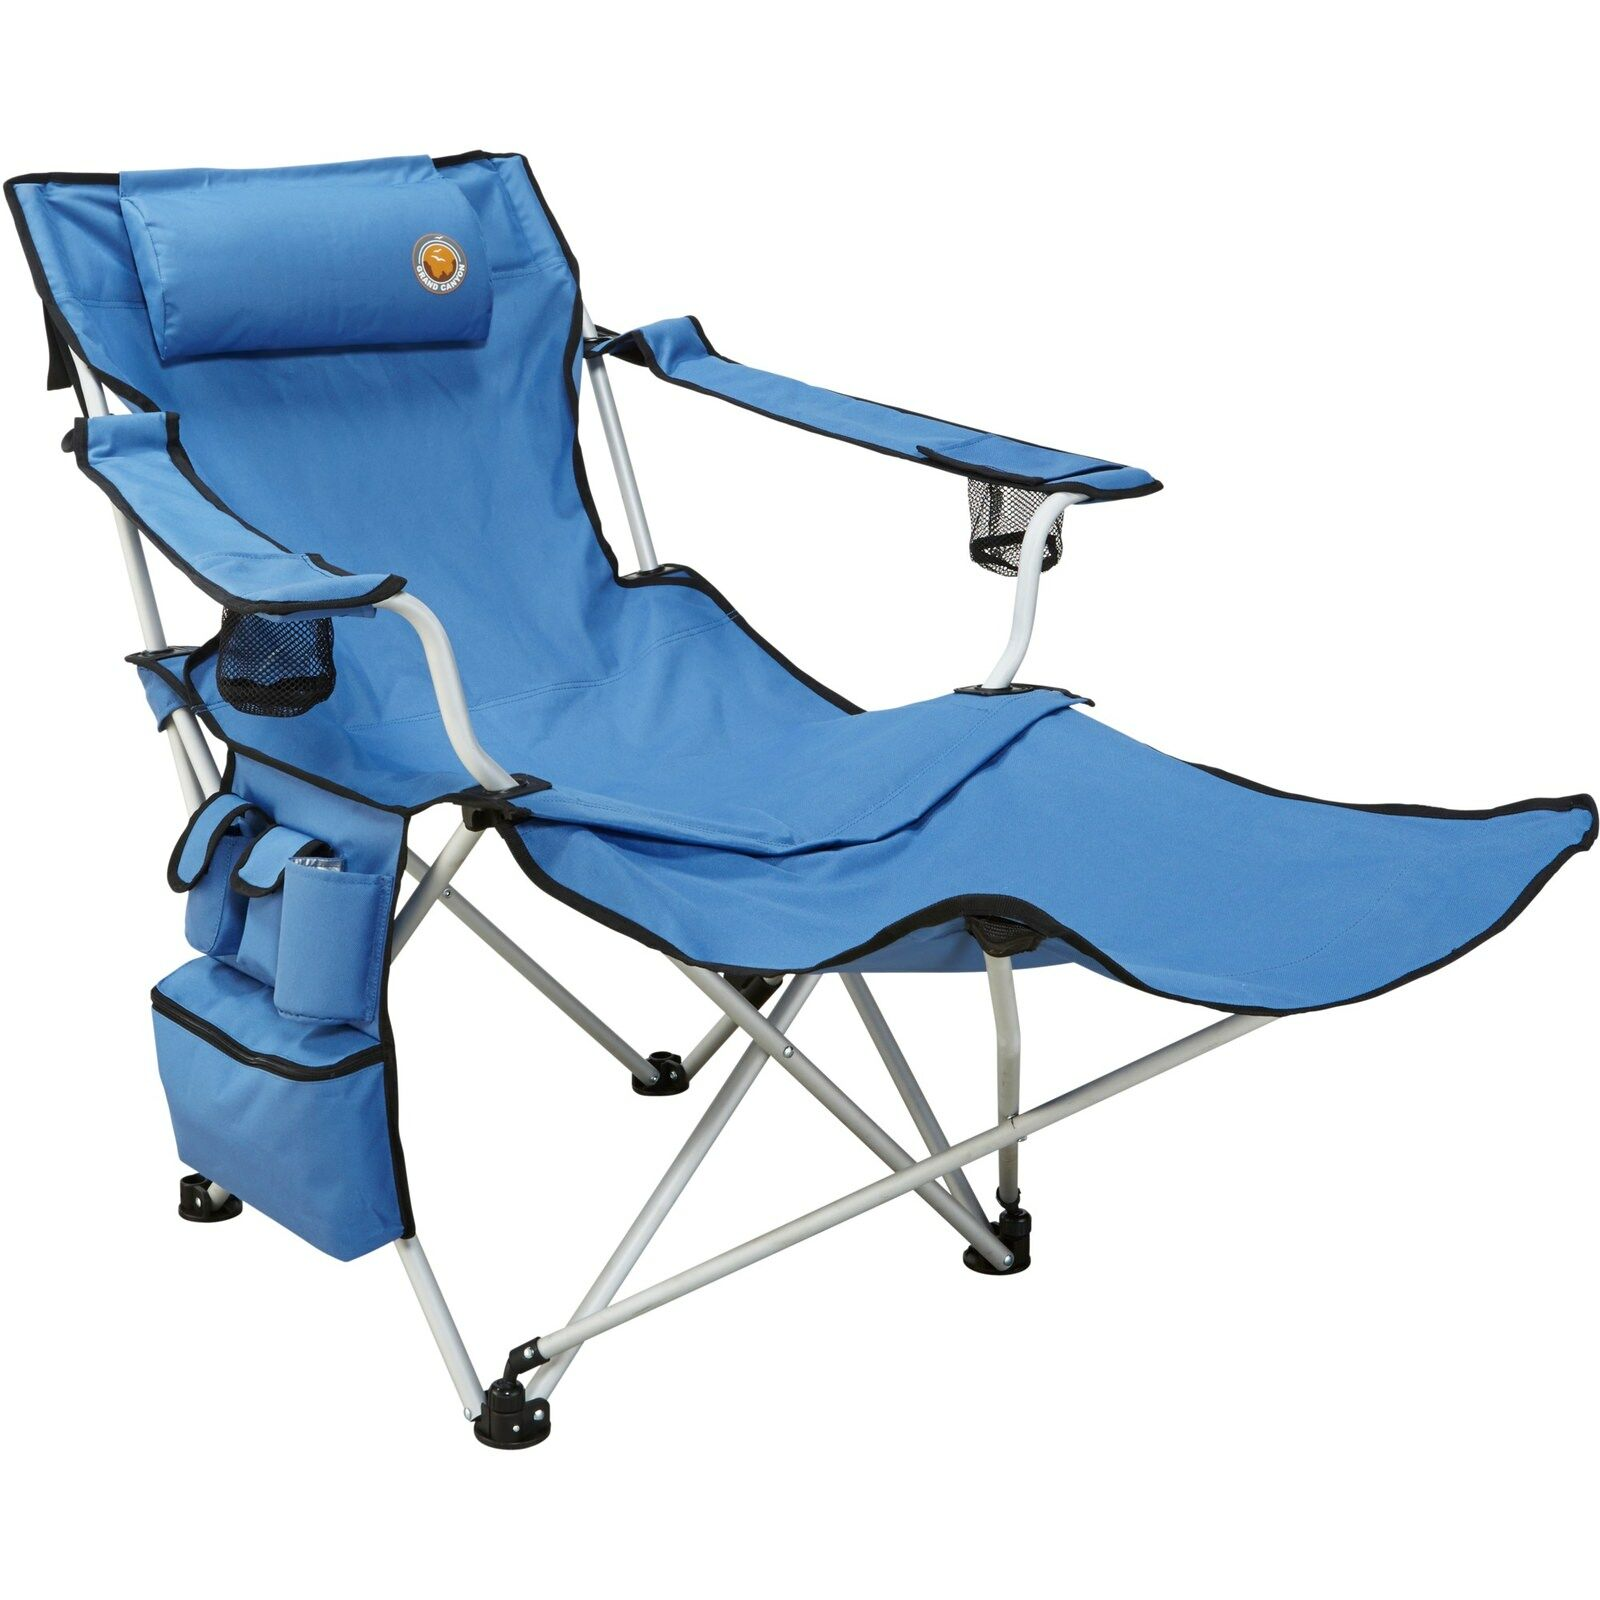 Grand Canyon Giga Chair Stuhl blau